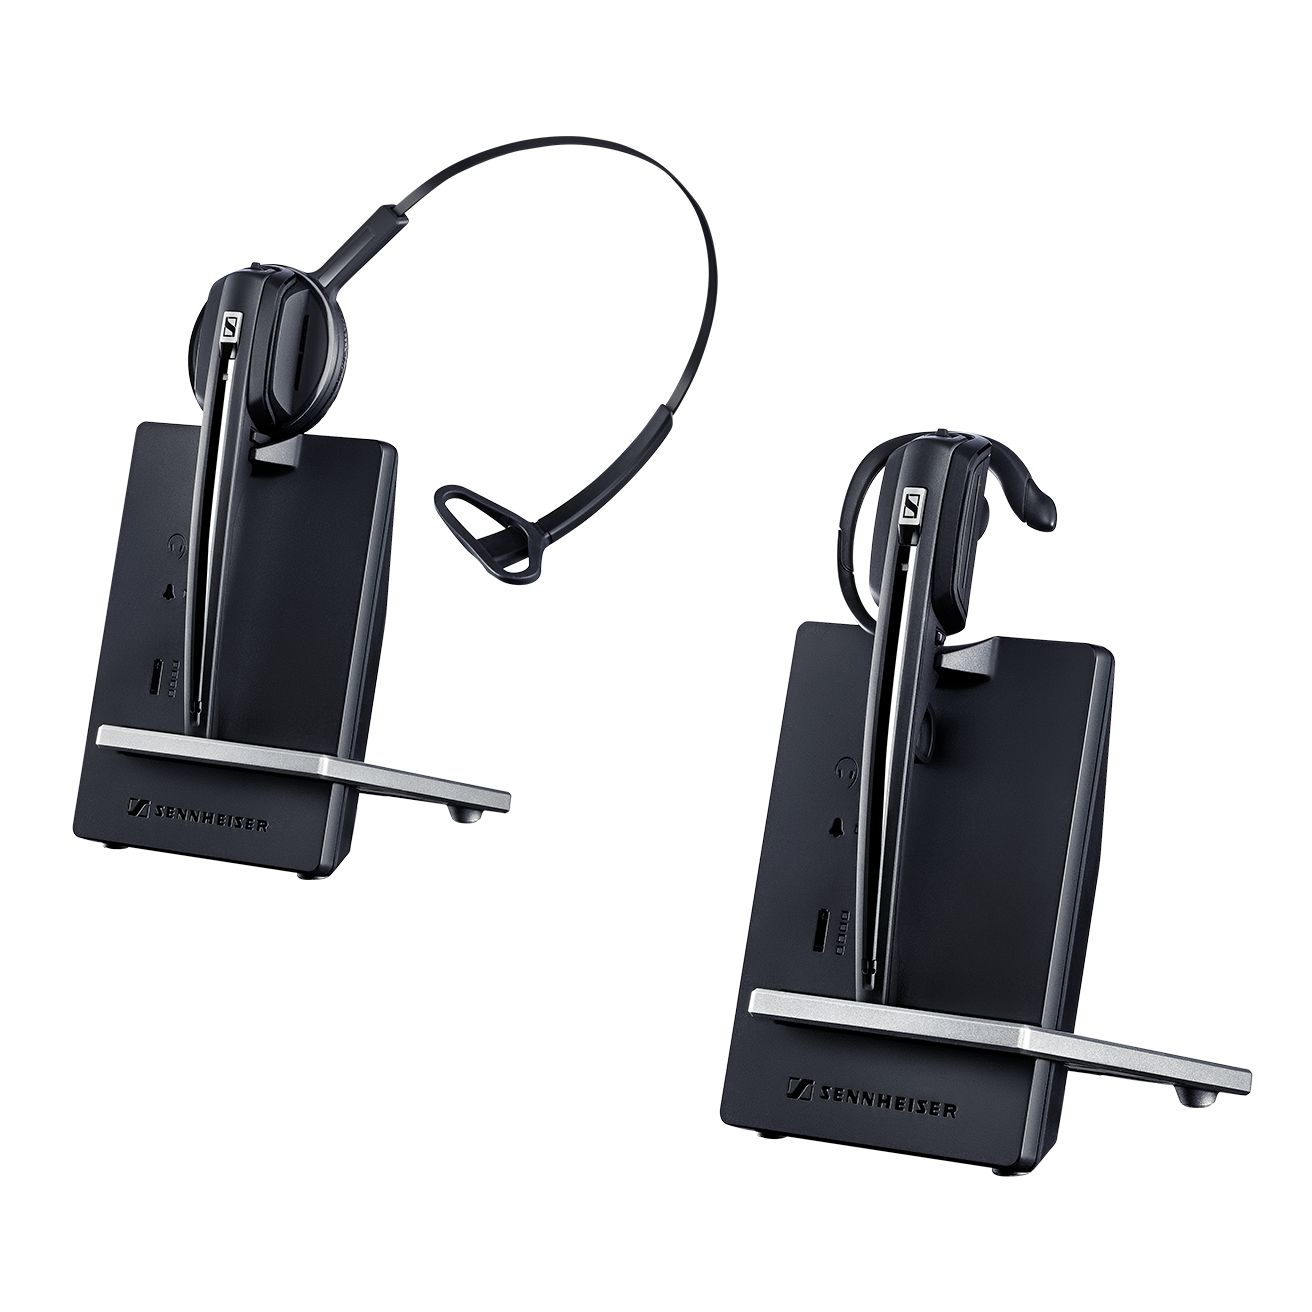 top 5 most affordable quality office wireless headsets. Black Bedroom Furniture Sets. Home Design Ideas